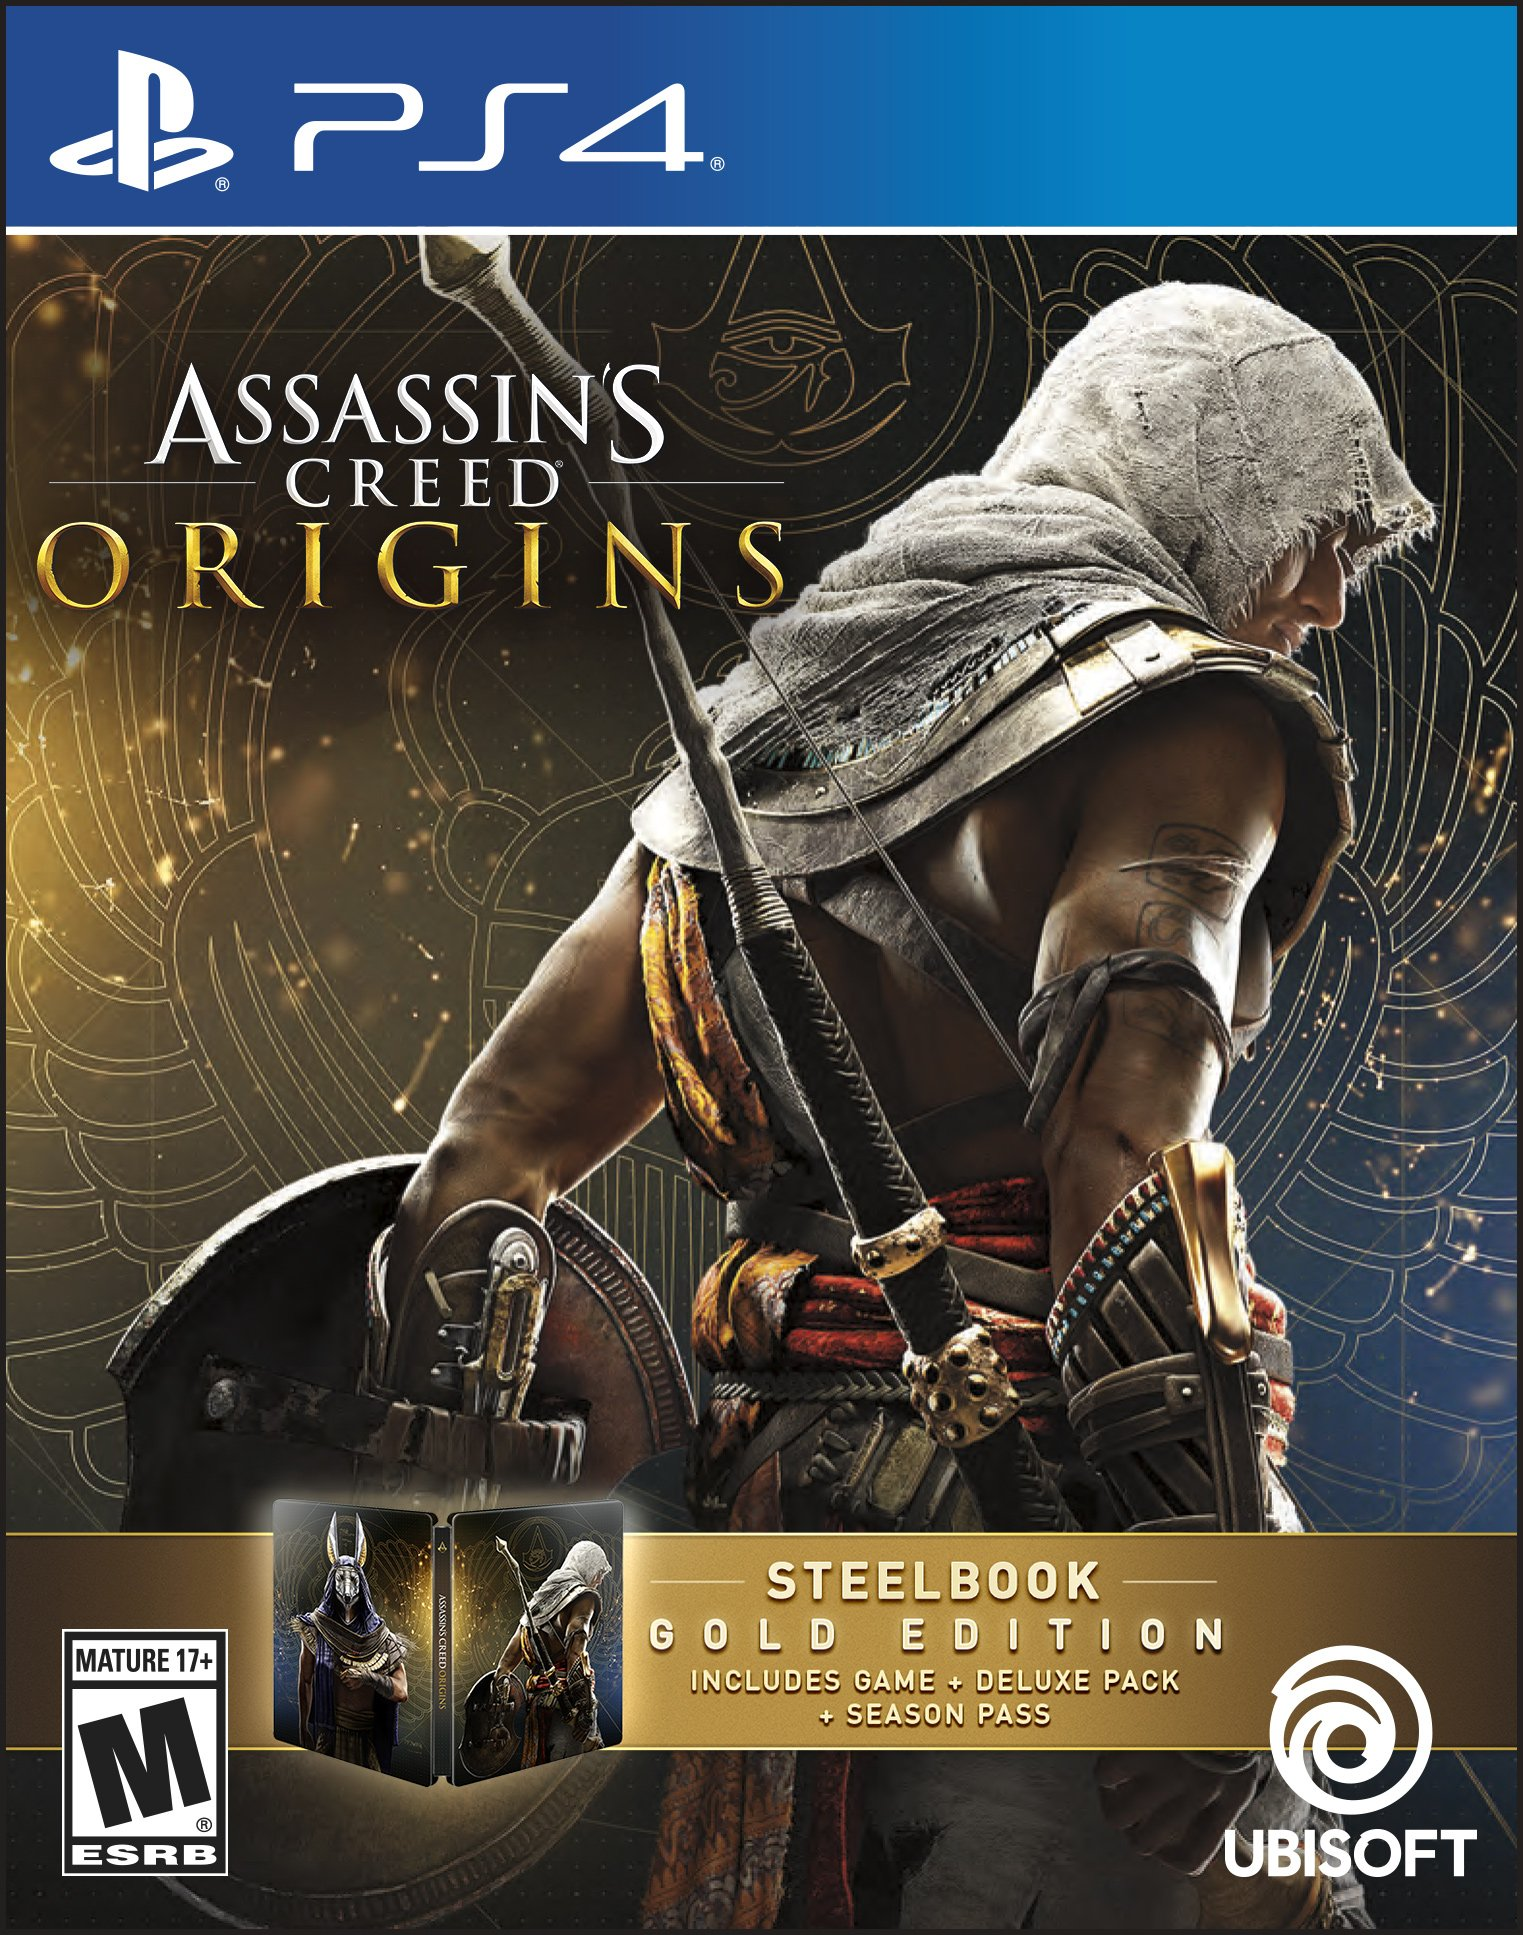 Cover Assassins Creed Origins Steelbook Gold Edition Ac Odyssey Take Photo